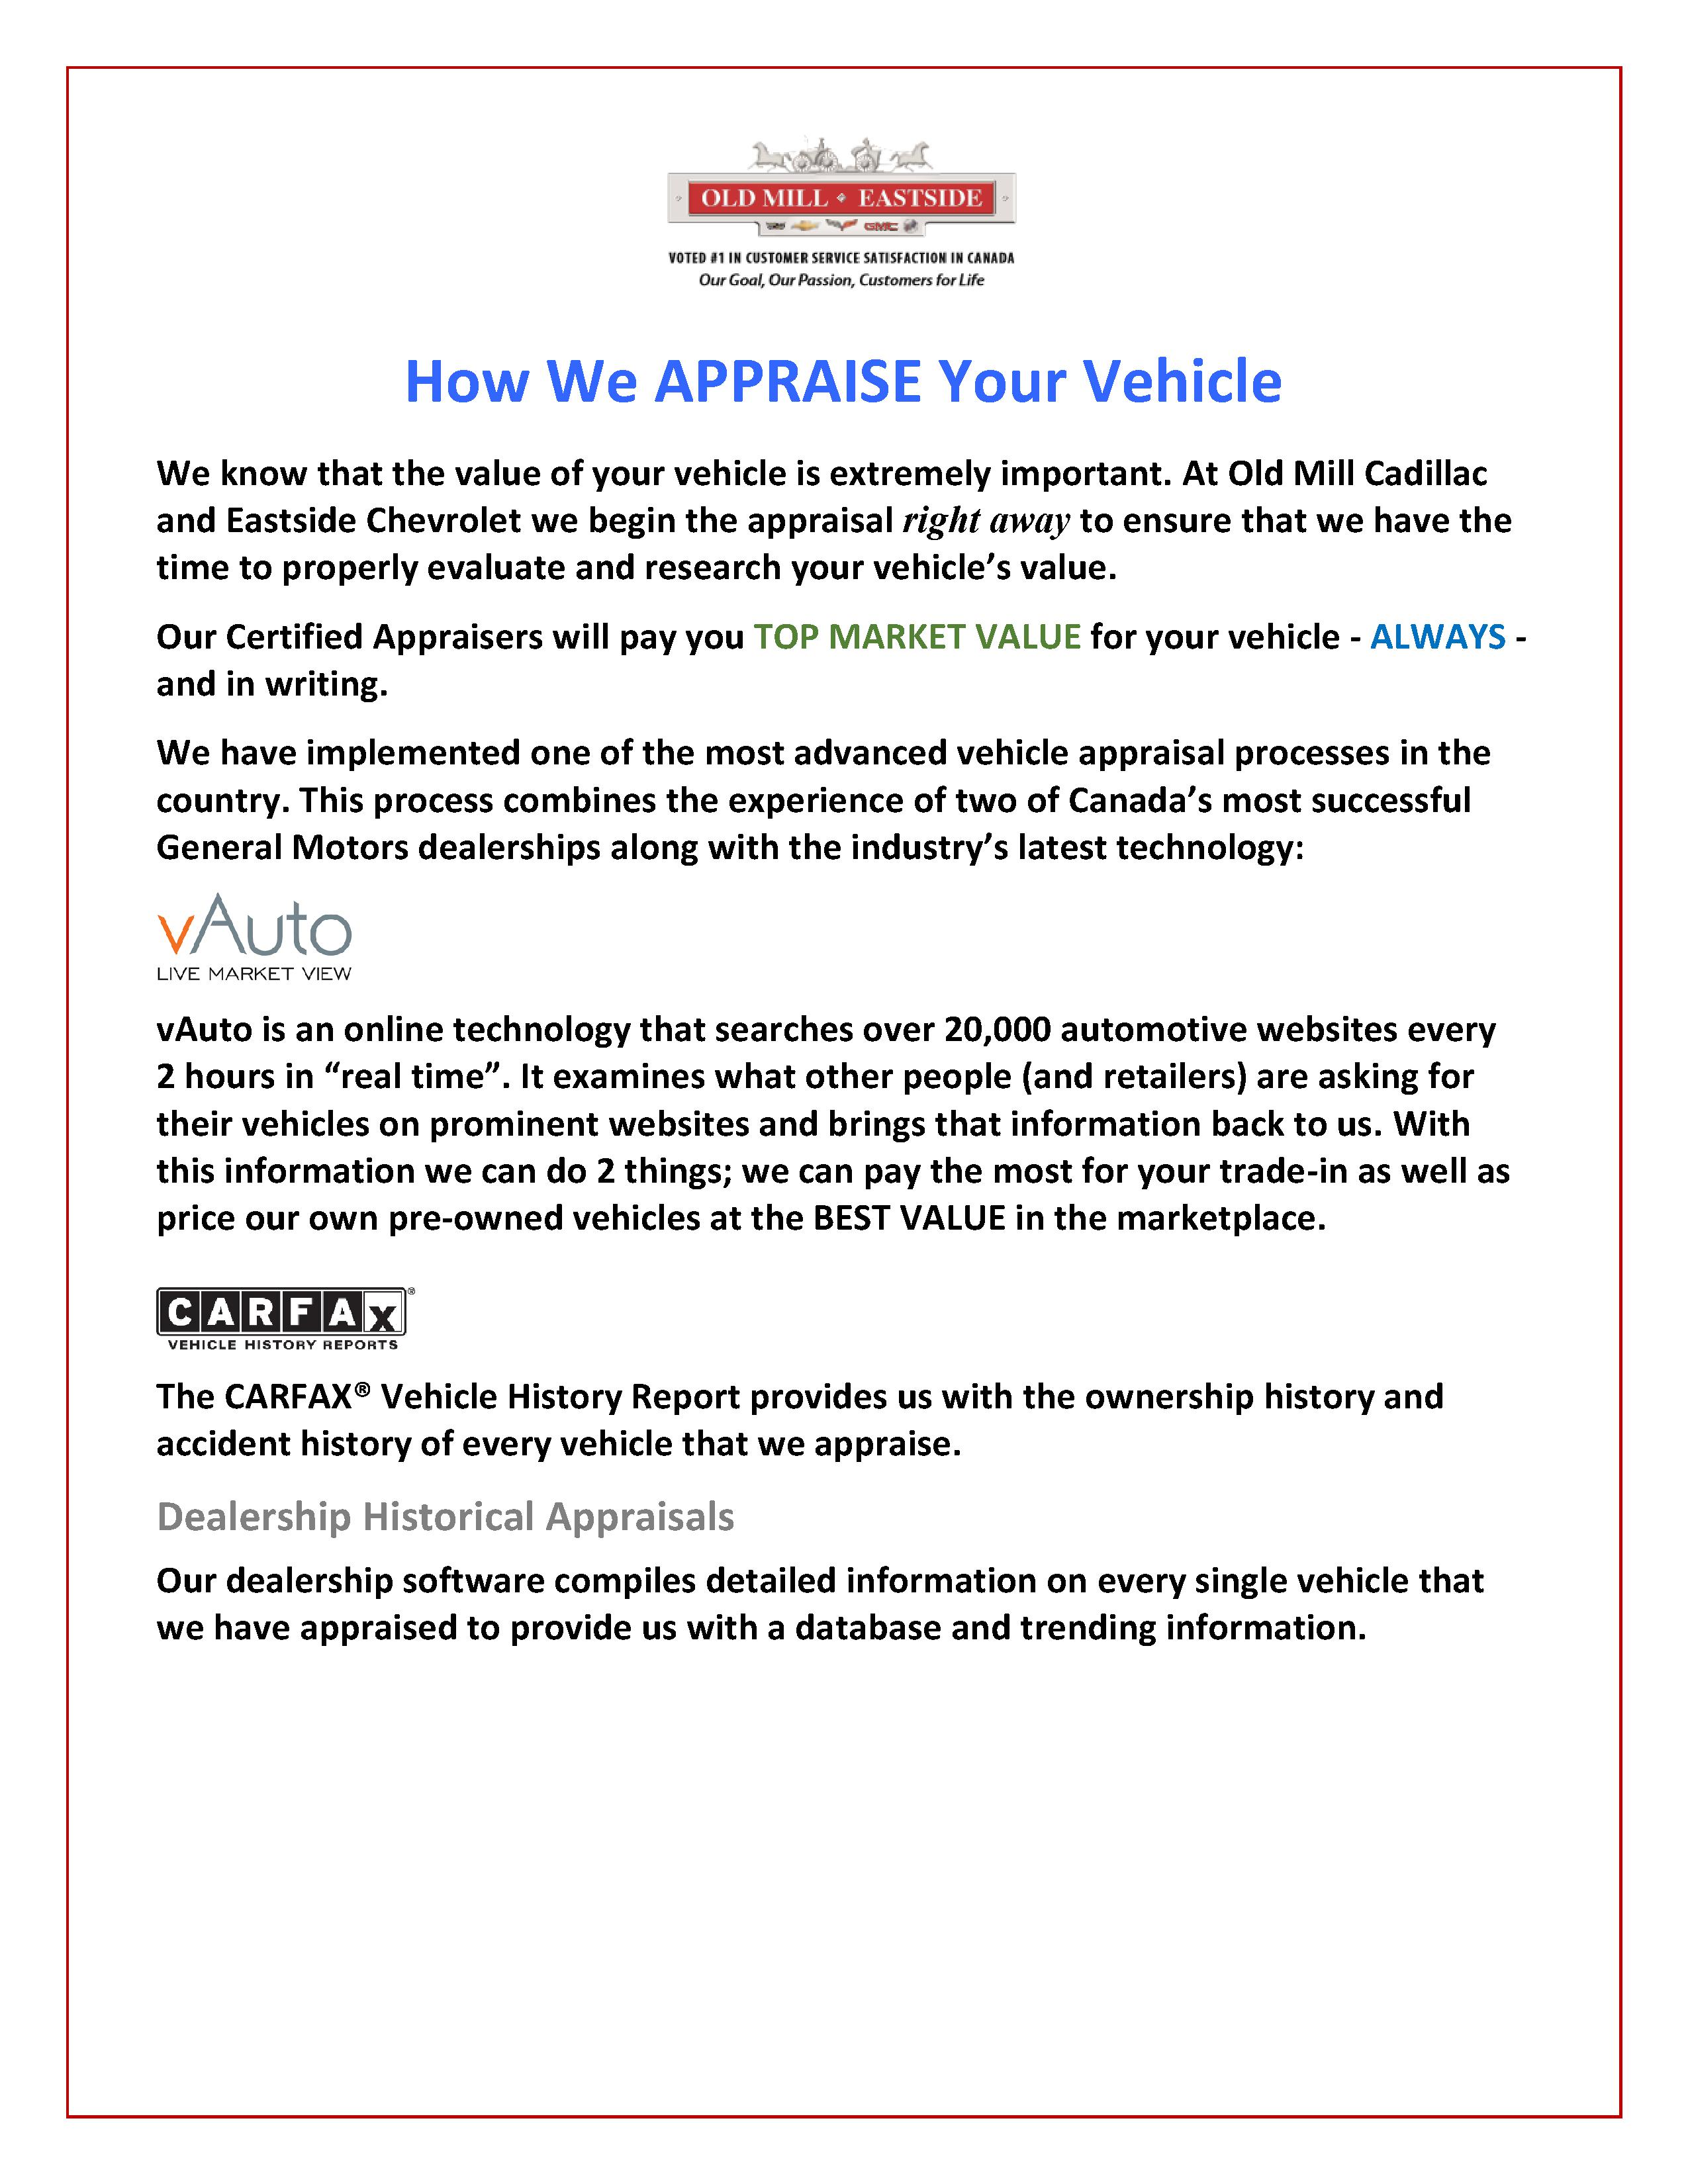 How We Appraise Your Vehicle